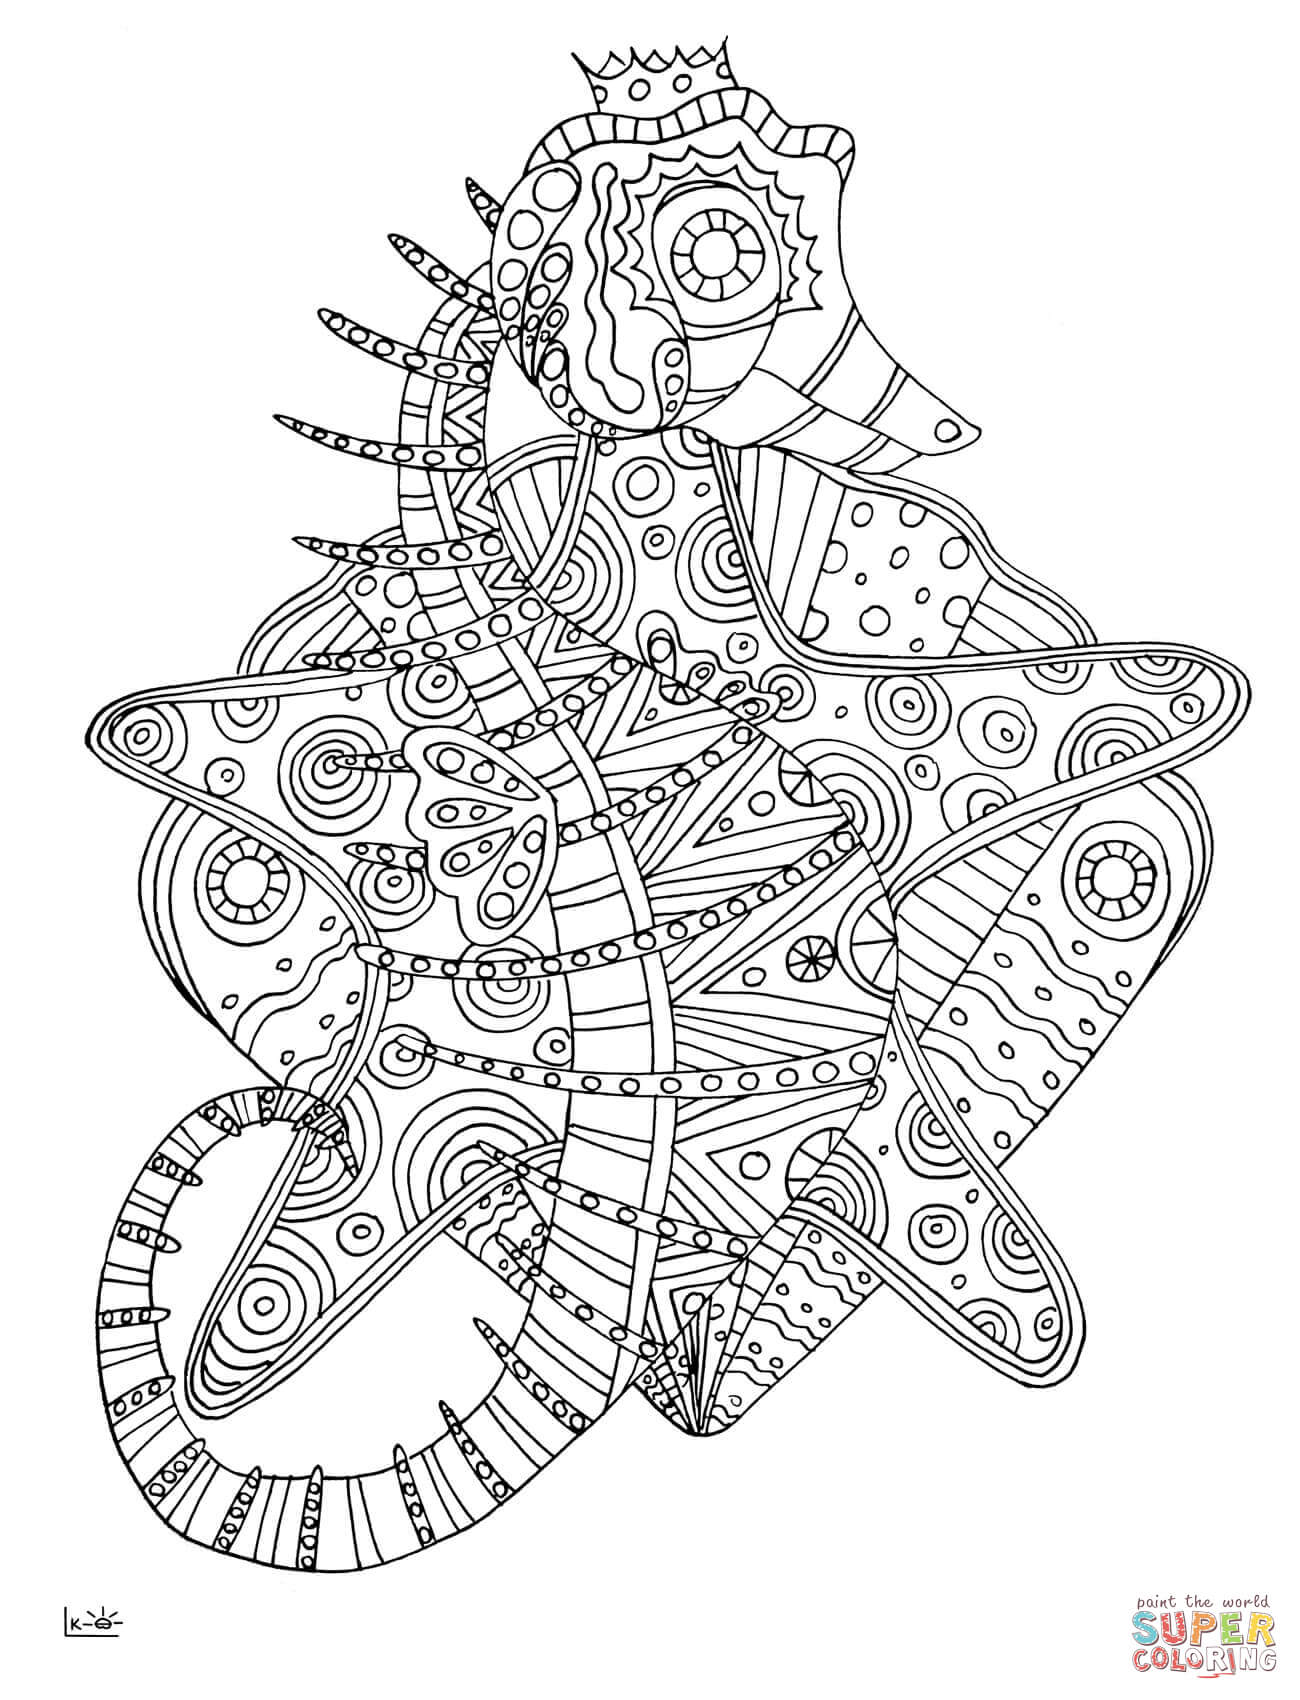 tribal animal coloring pages tribal elephant coloring pages at getcoloringscom free tribal coloring pages animal